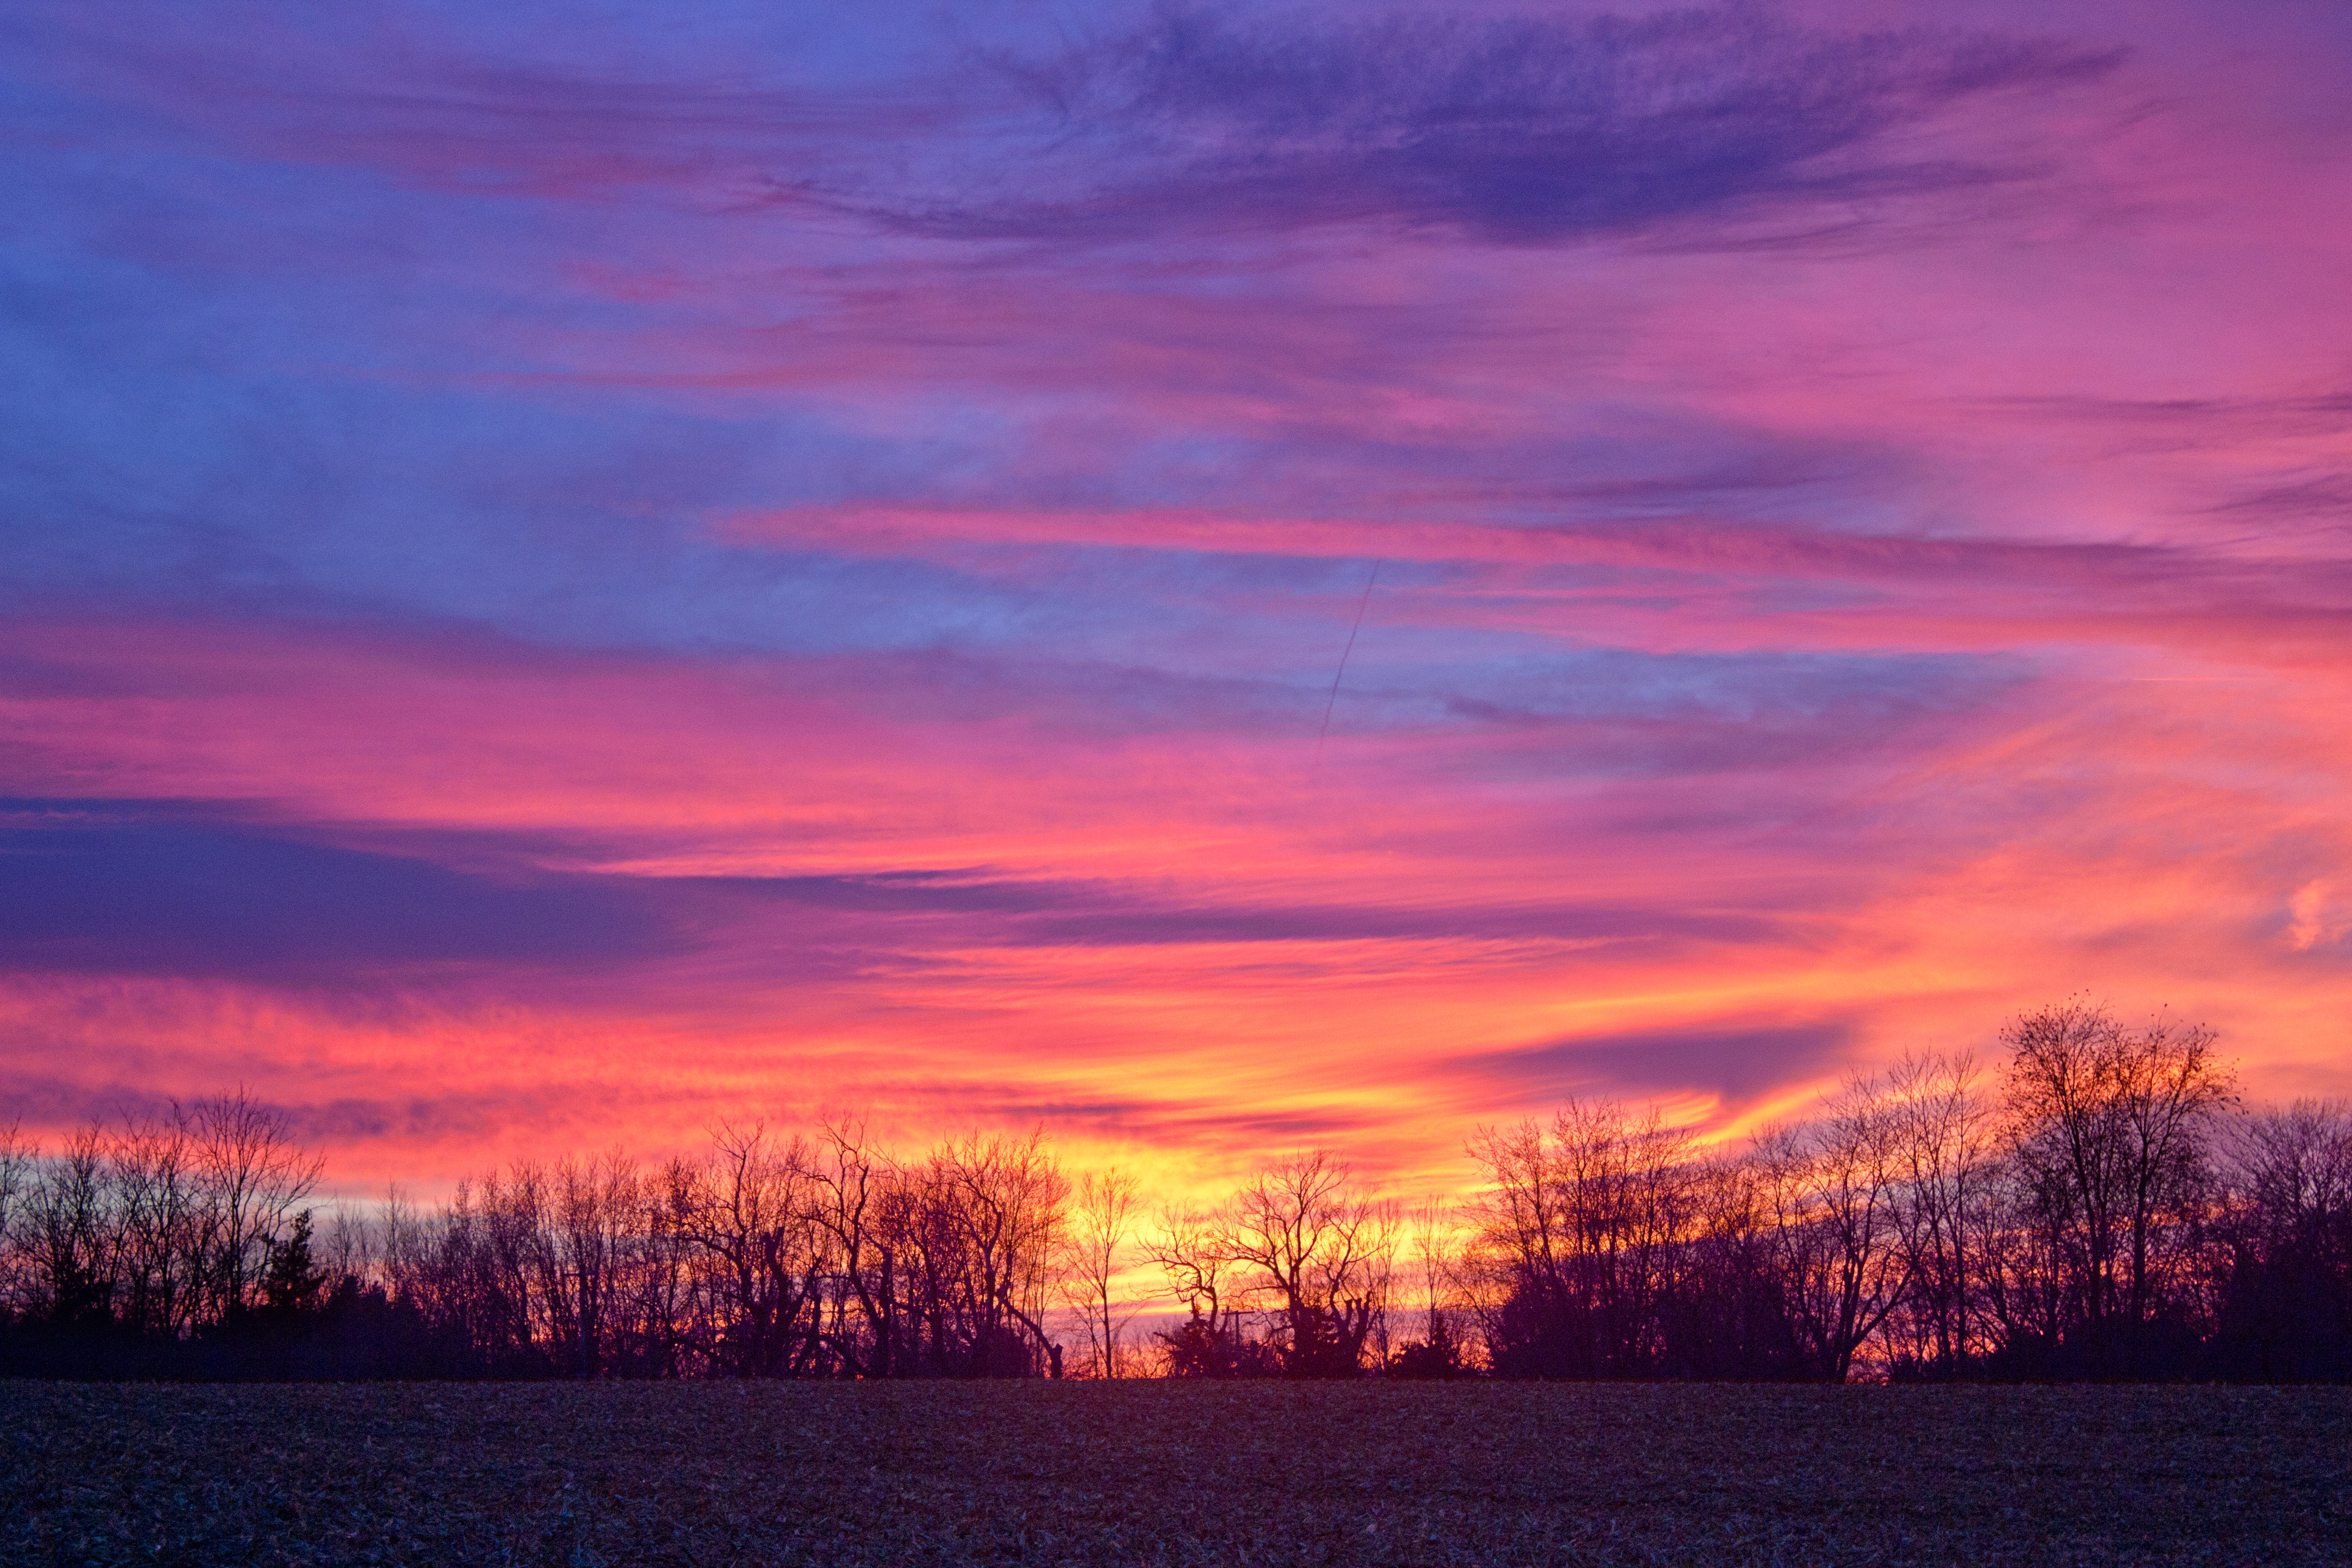 121214 free wallpaper 720x1520 for phone, download images Nature, Trees, Sky, Horizon, Colorful 720x1520 for mobile